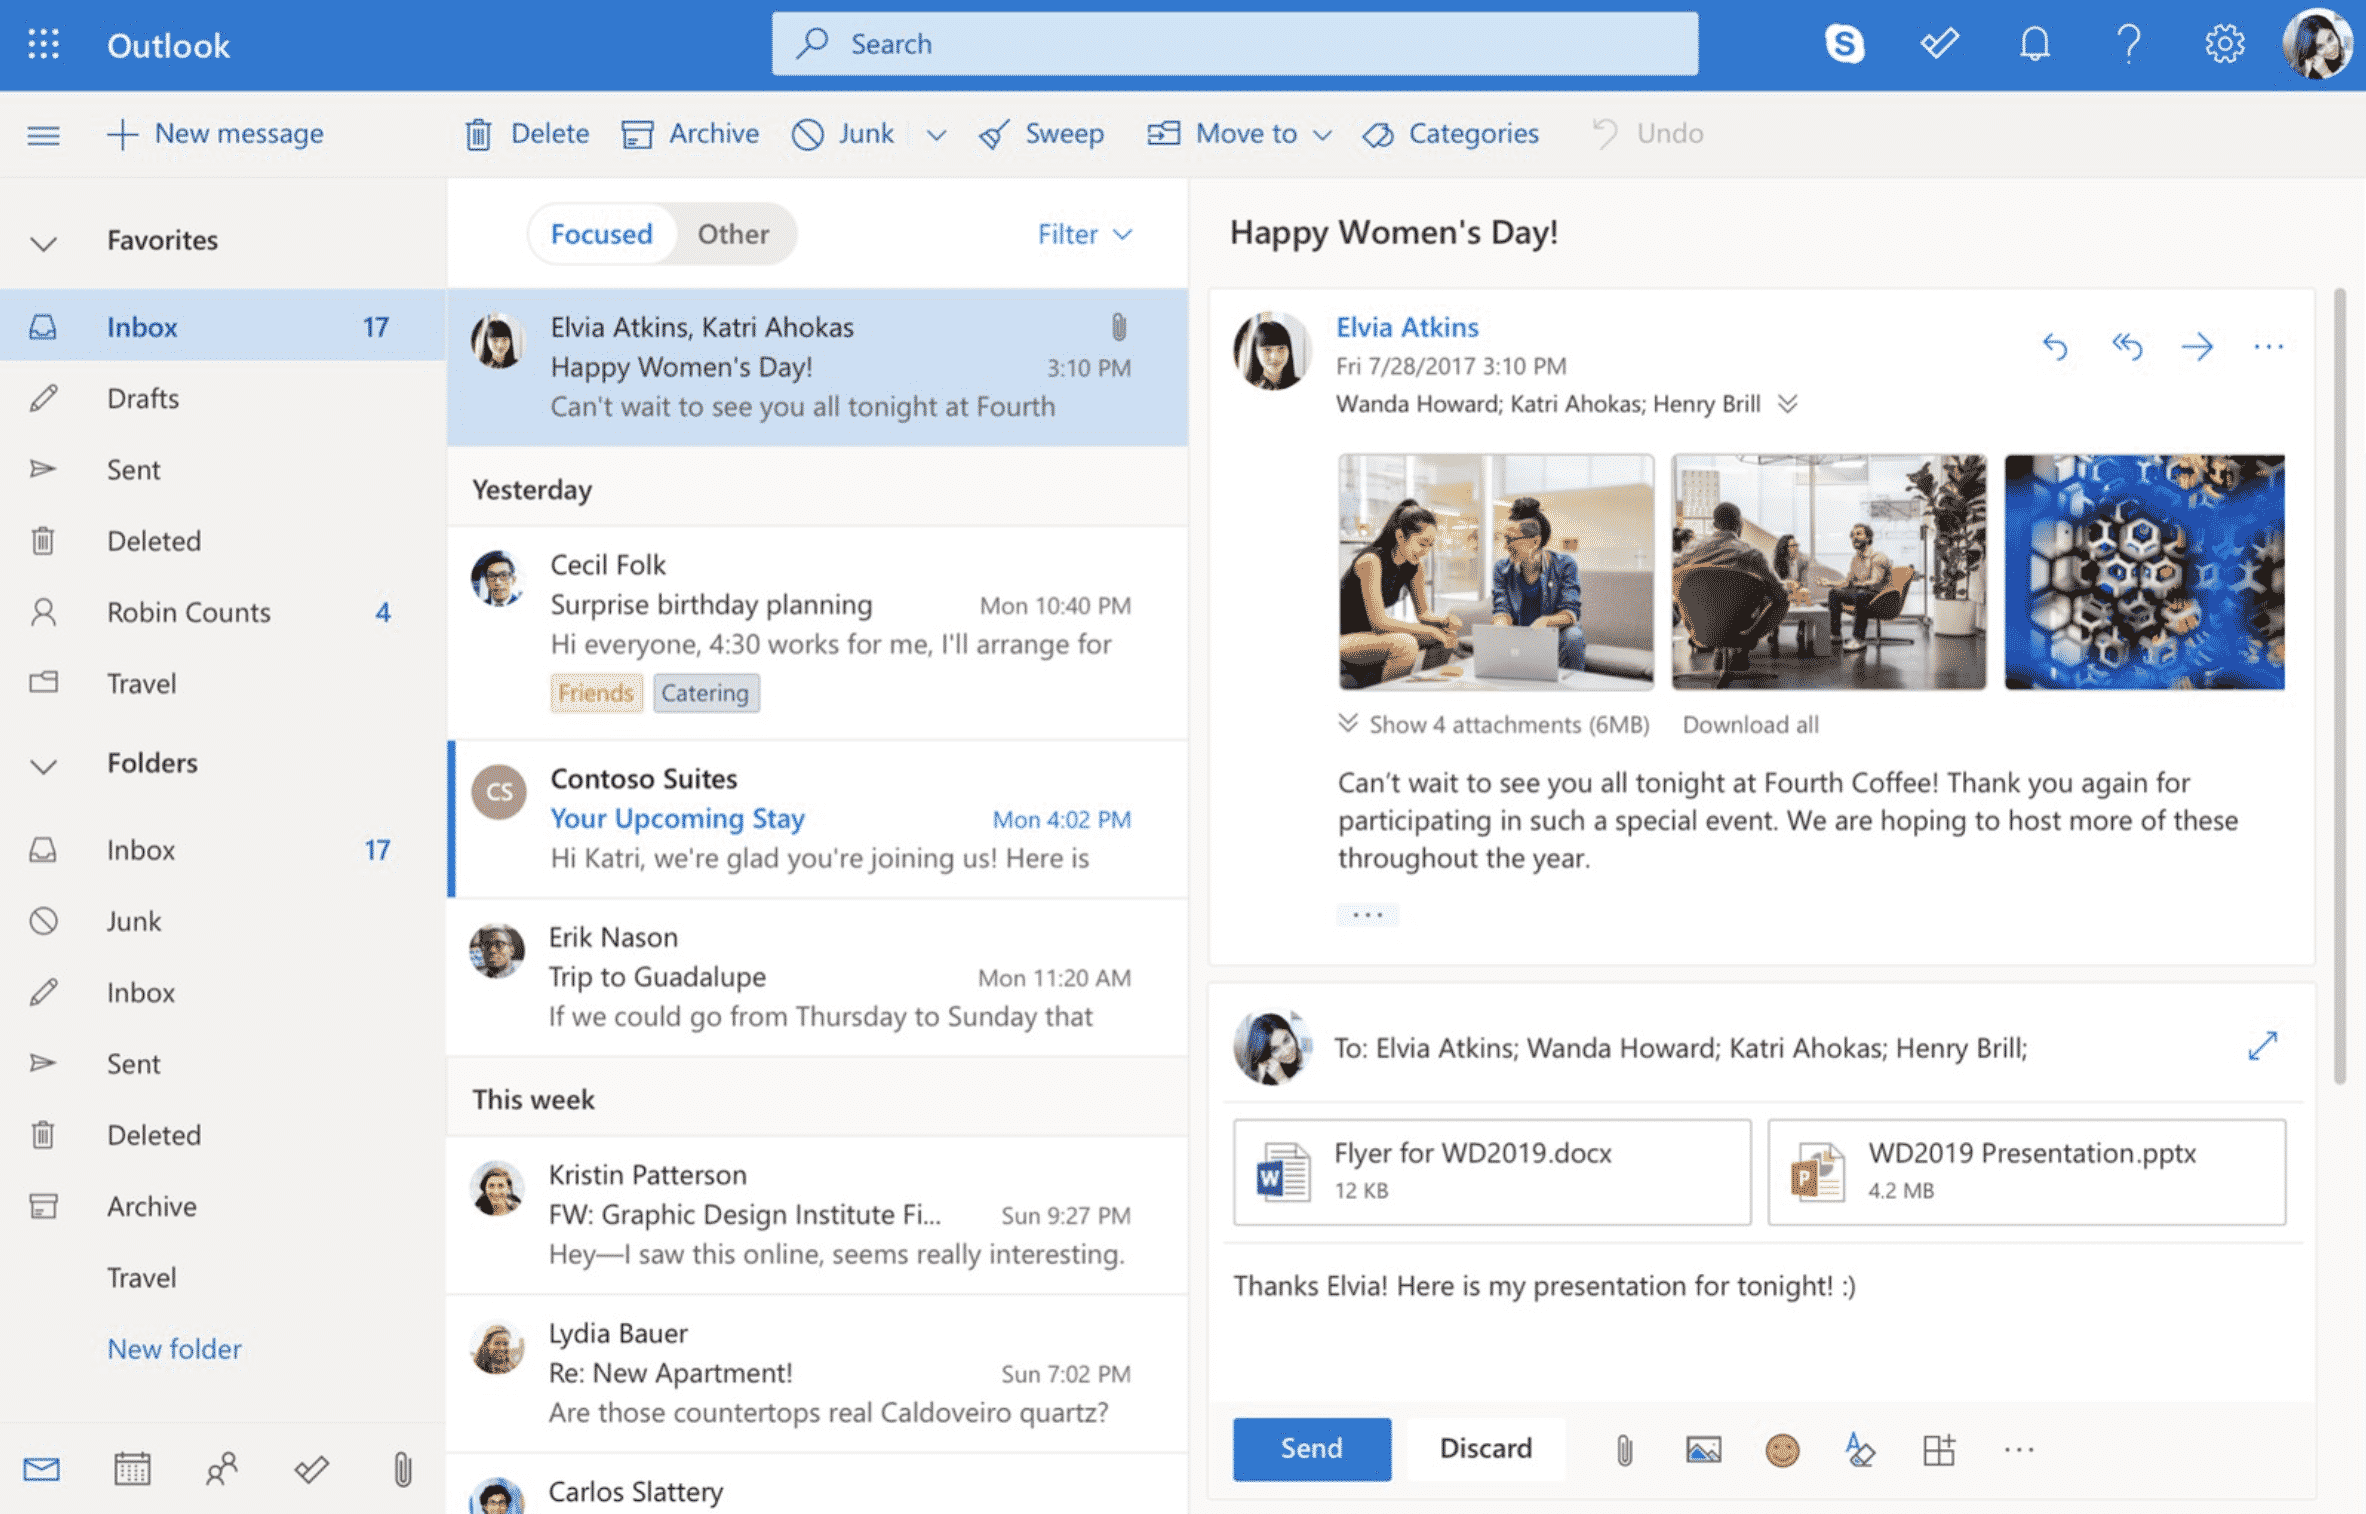 Windows to Change Outlook for Mac